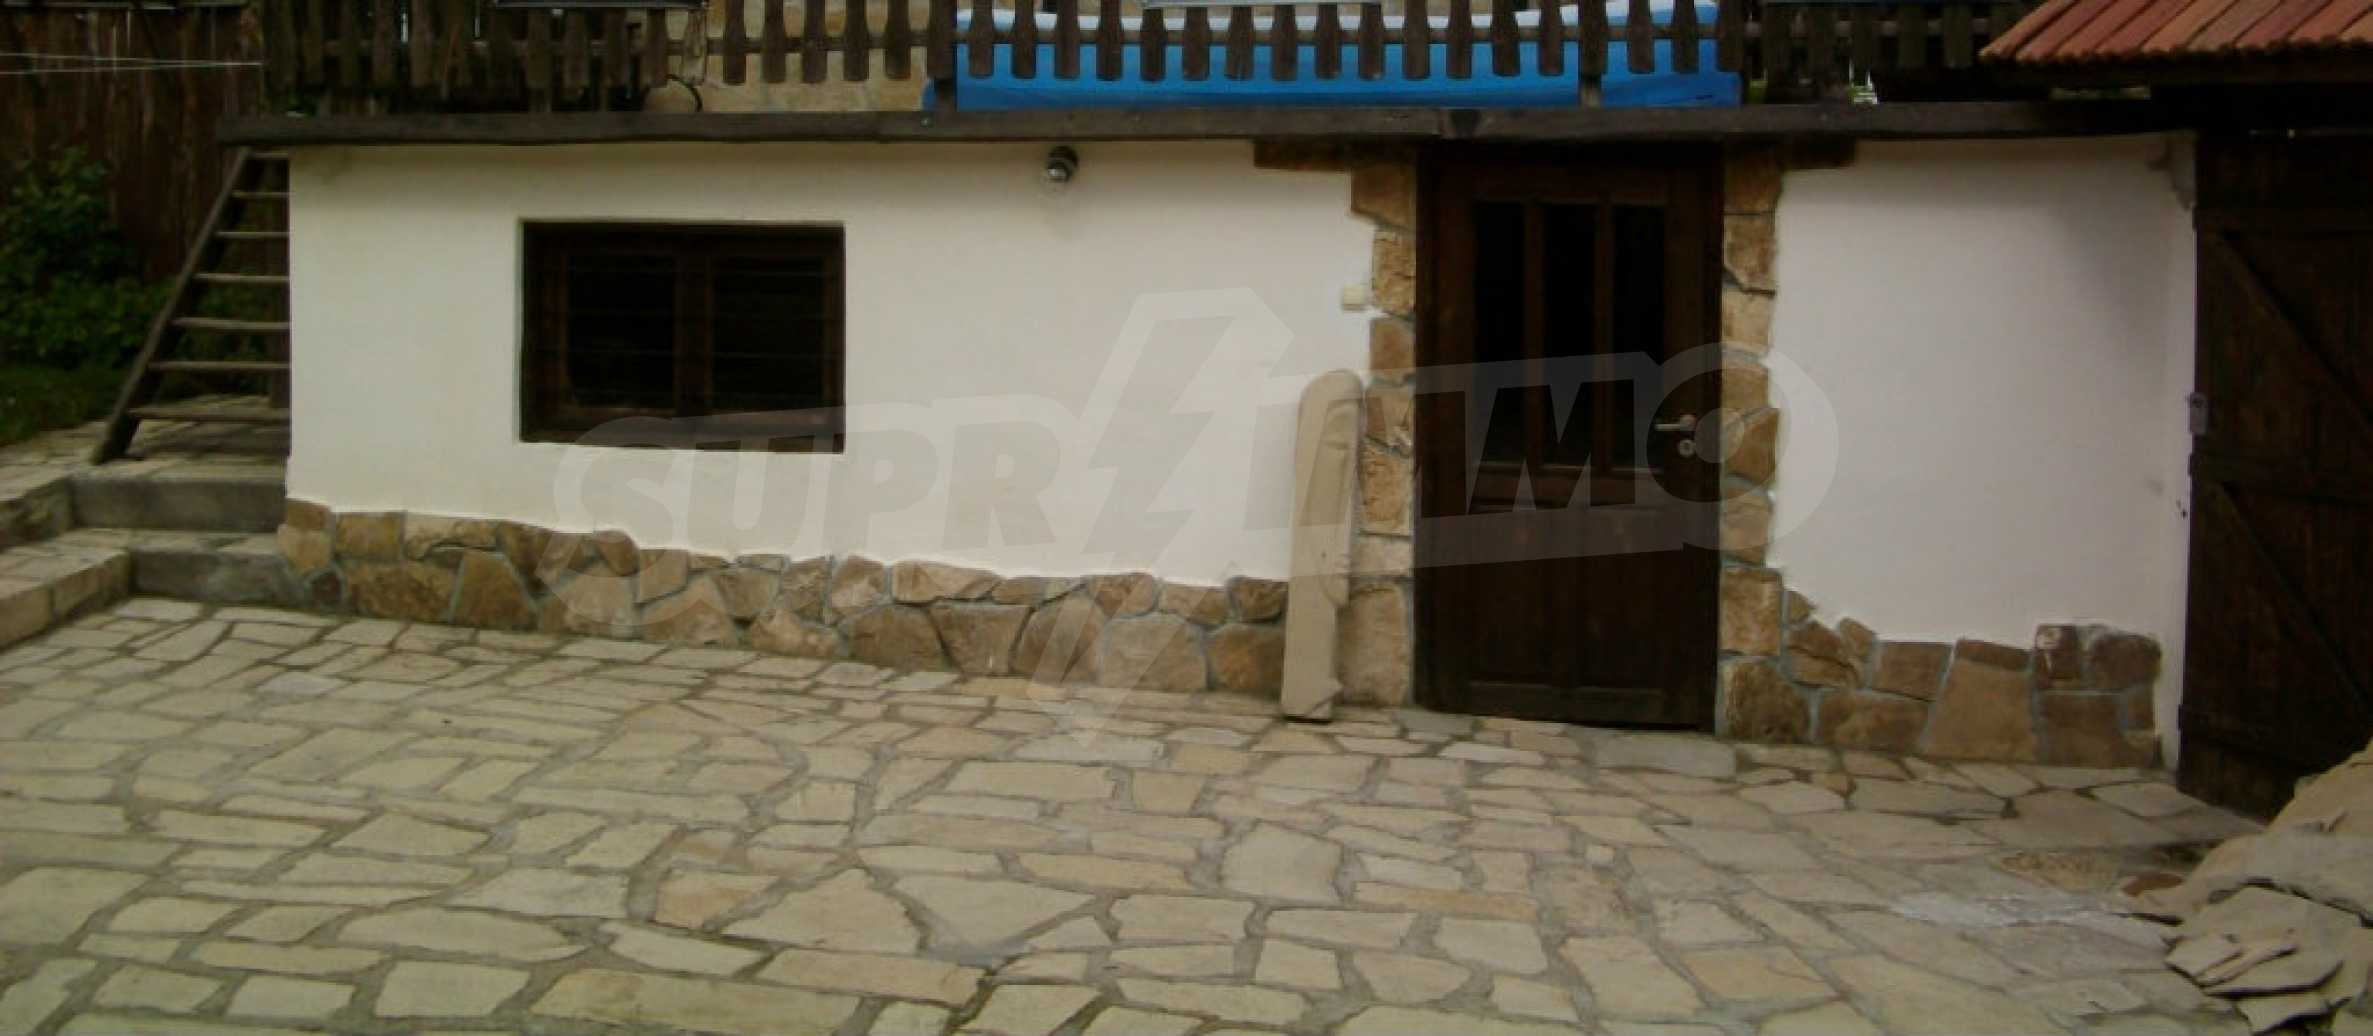 Fully renovated and furnished property in traditional Bulgarian style 37